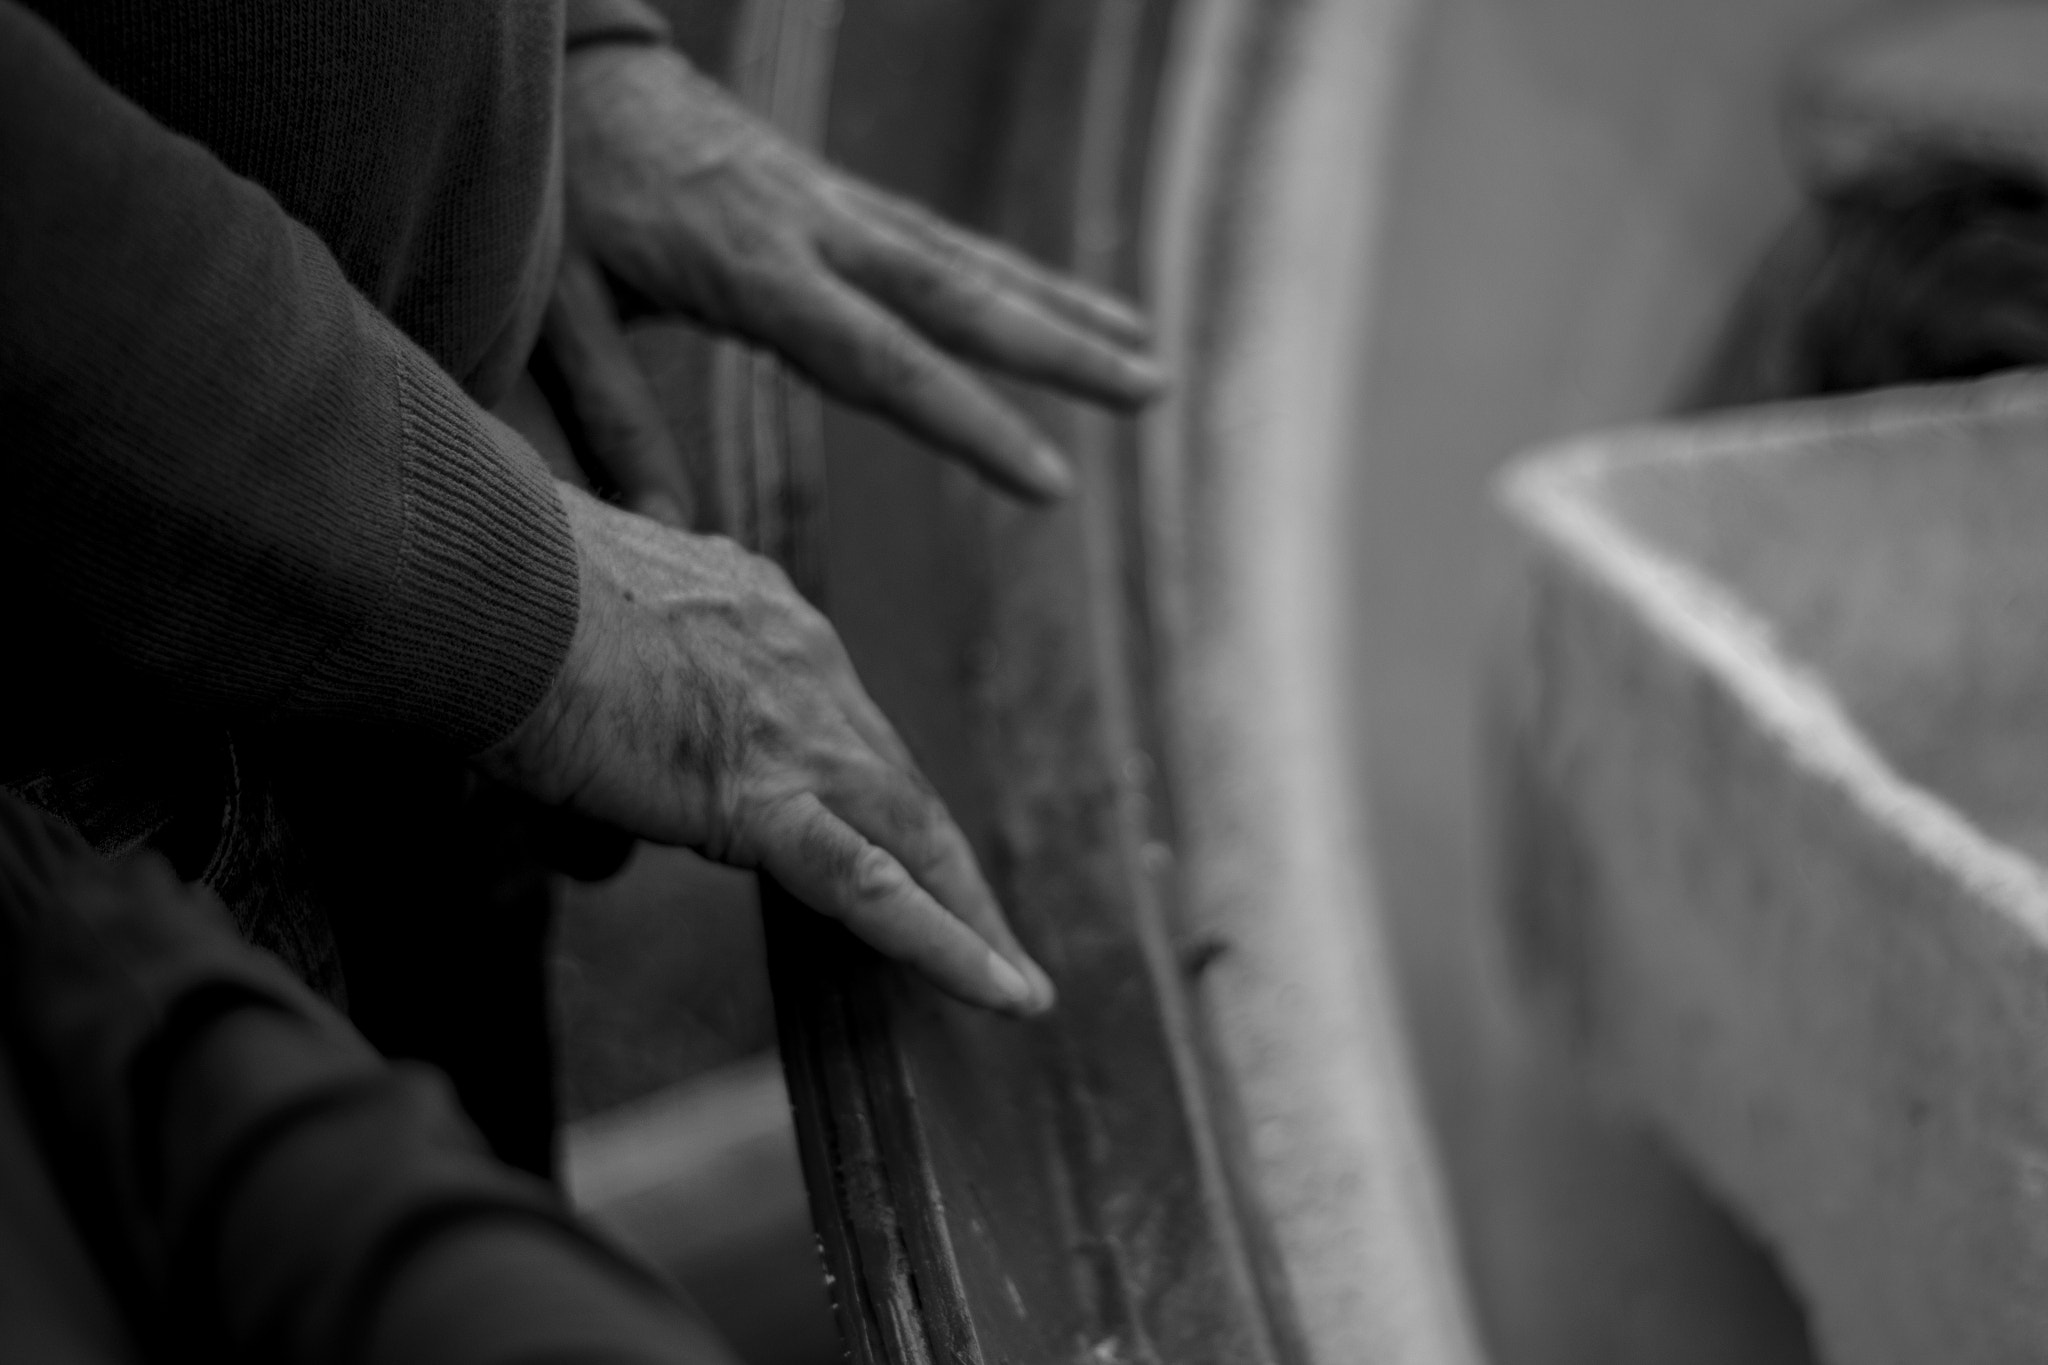 Photograph ,Wise hands by Federico Rinaldi on 500px